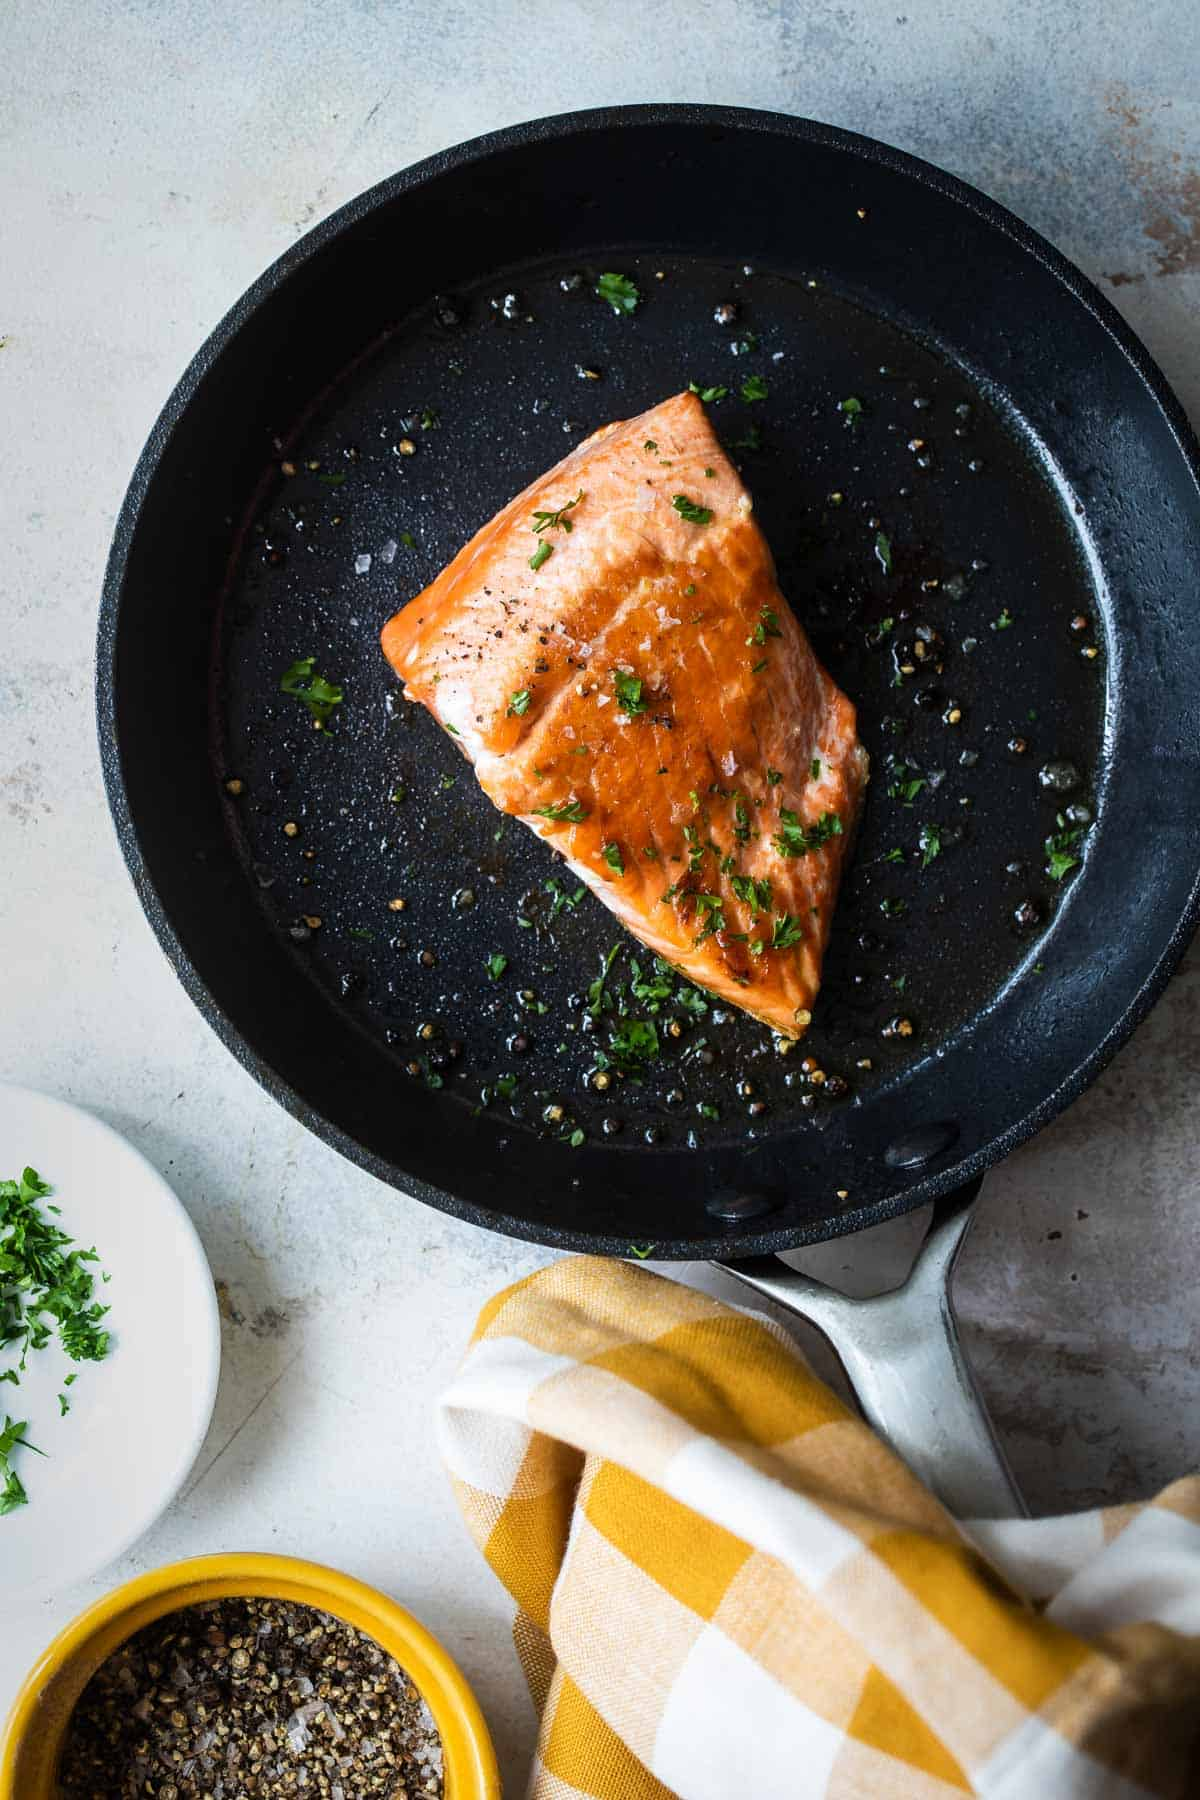 salmon in a pan after being cooked